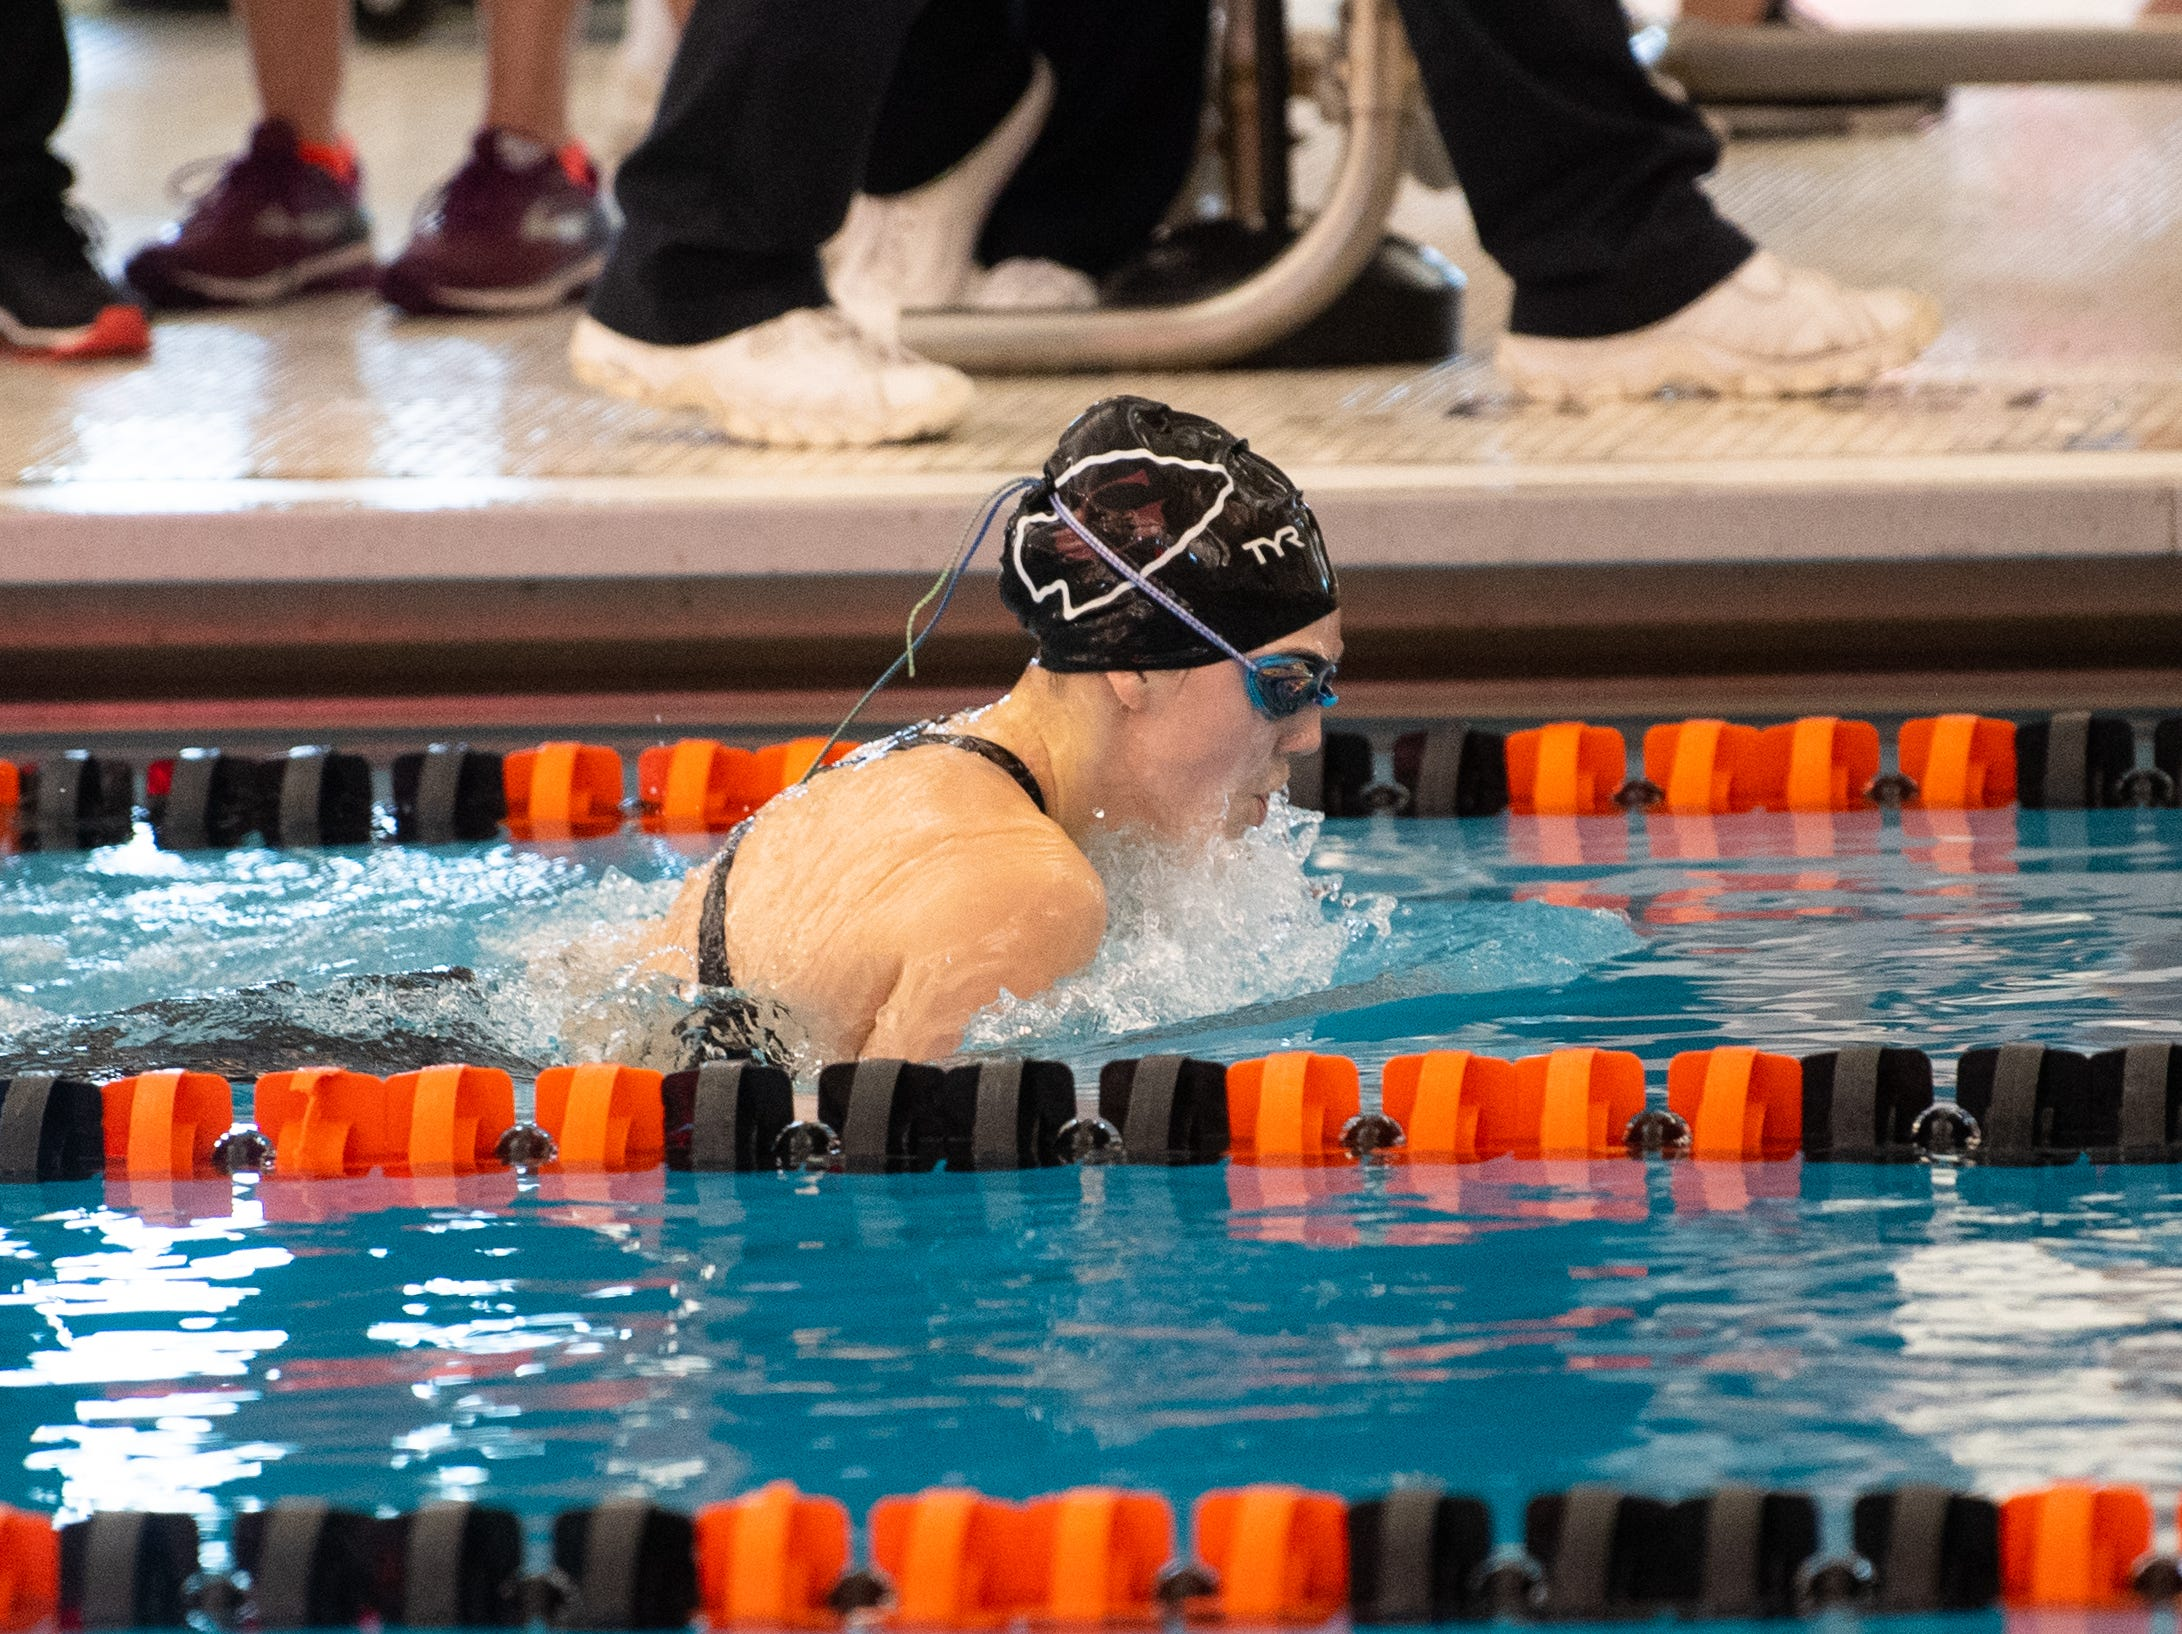 Gettysburg's Katie Ketterman competes in the Girls 100 Yard Breaststroke during the 2019 YAIAA Swimming and Diving Championships at Central York High School, February 9, 2019.